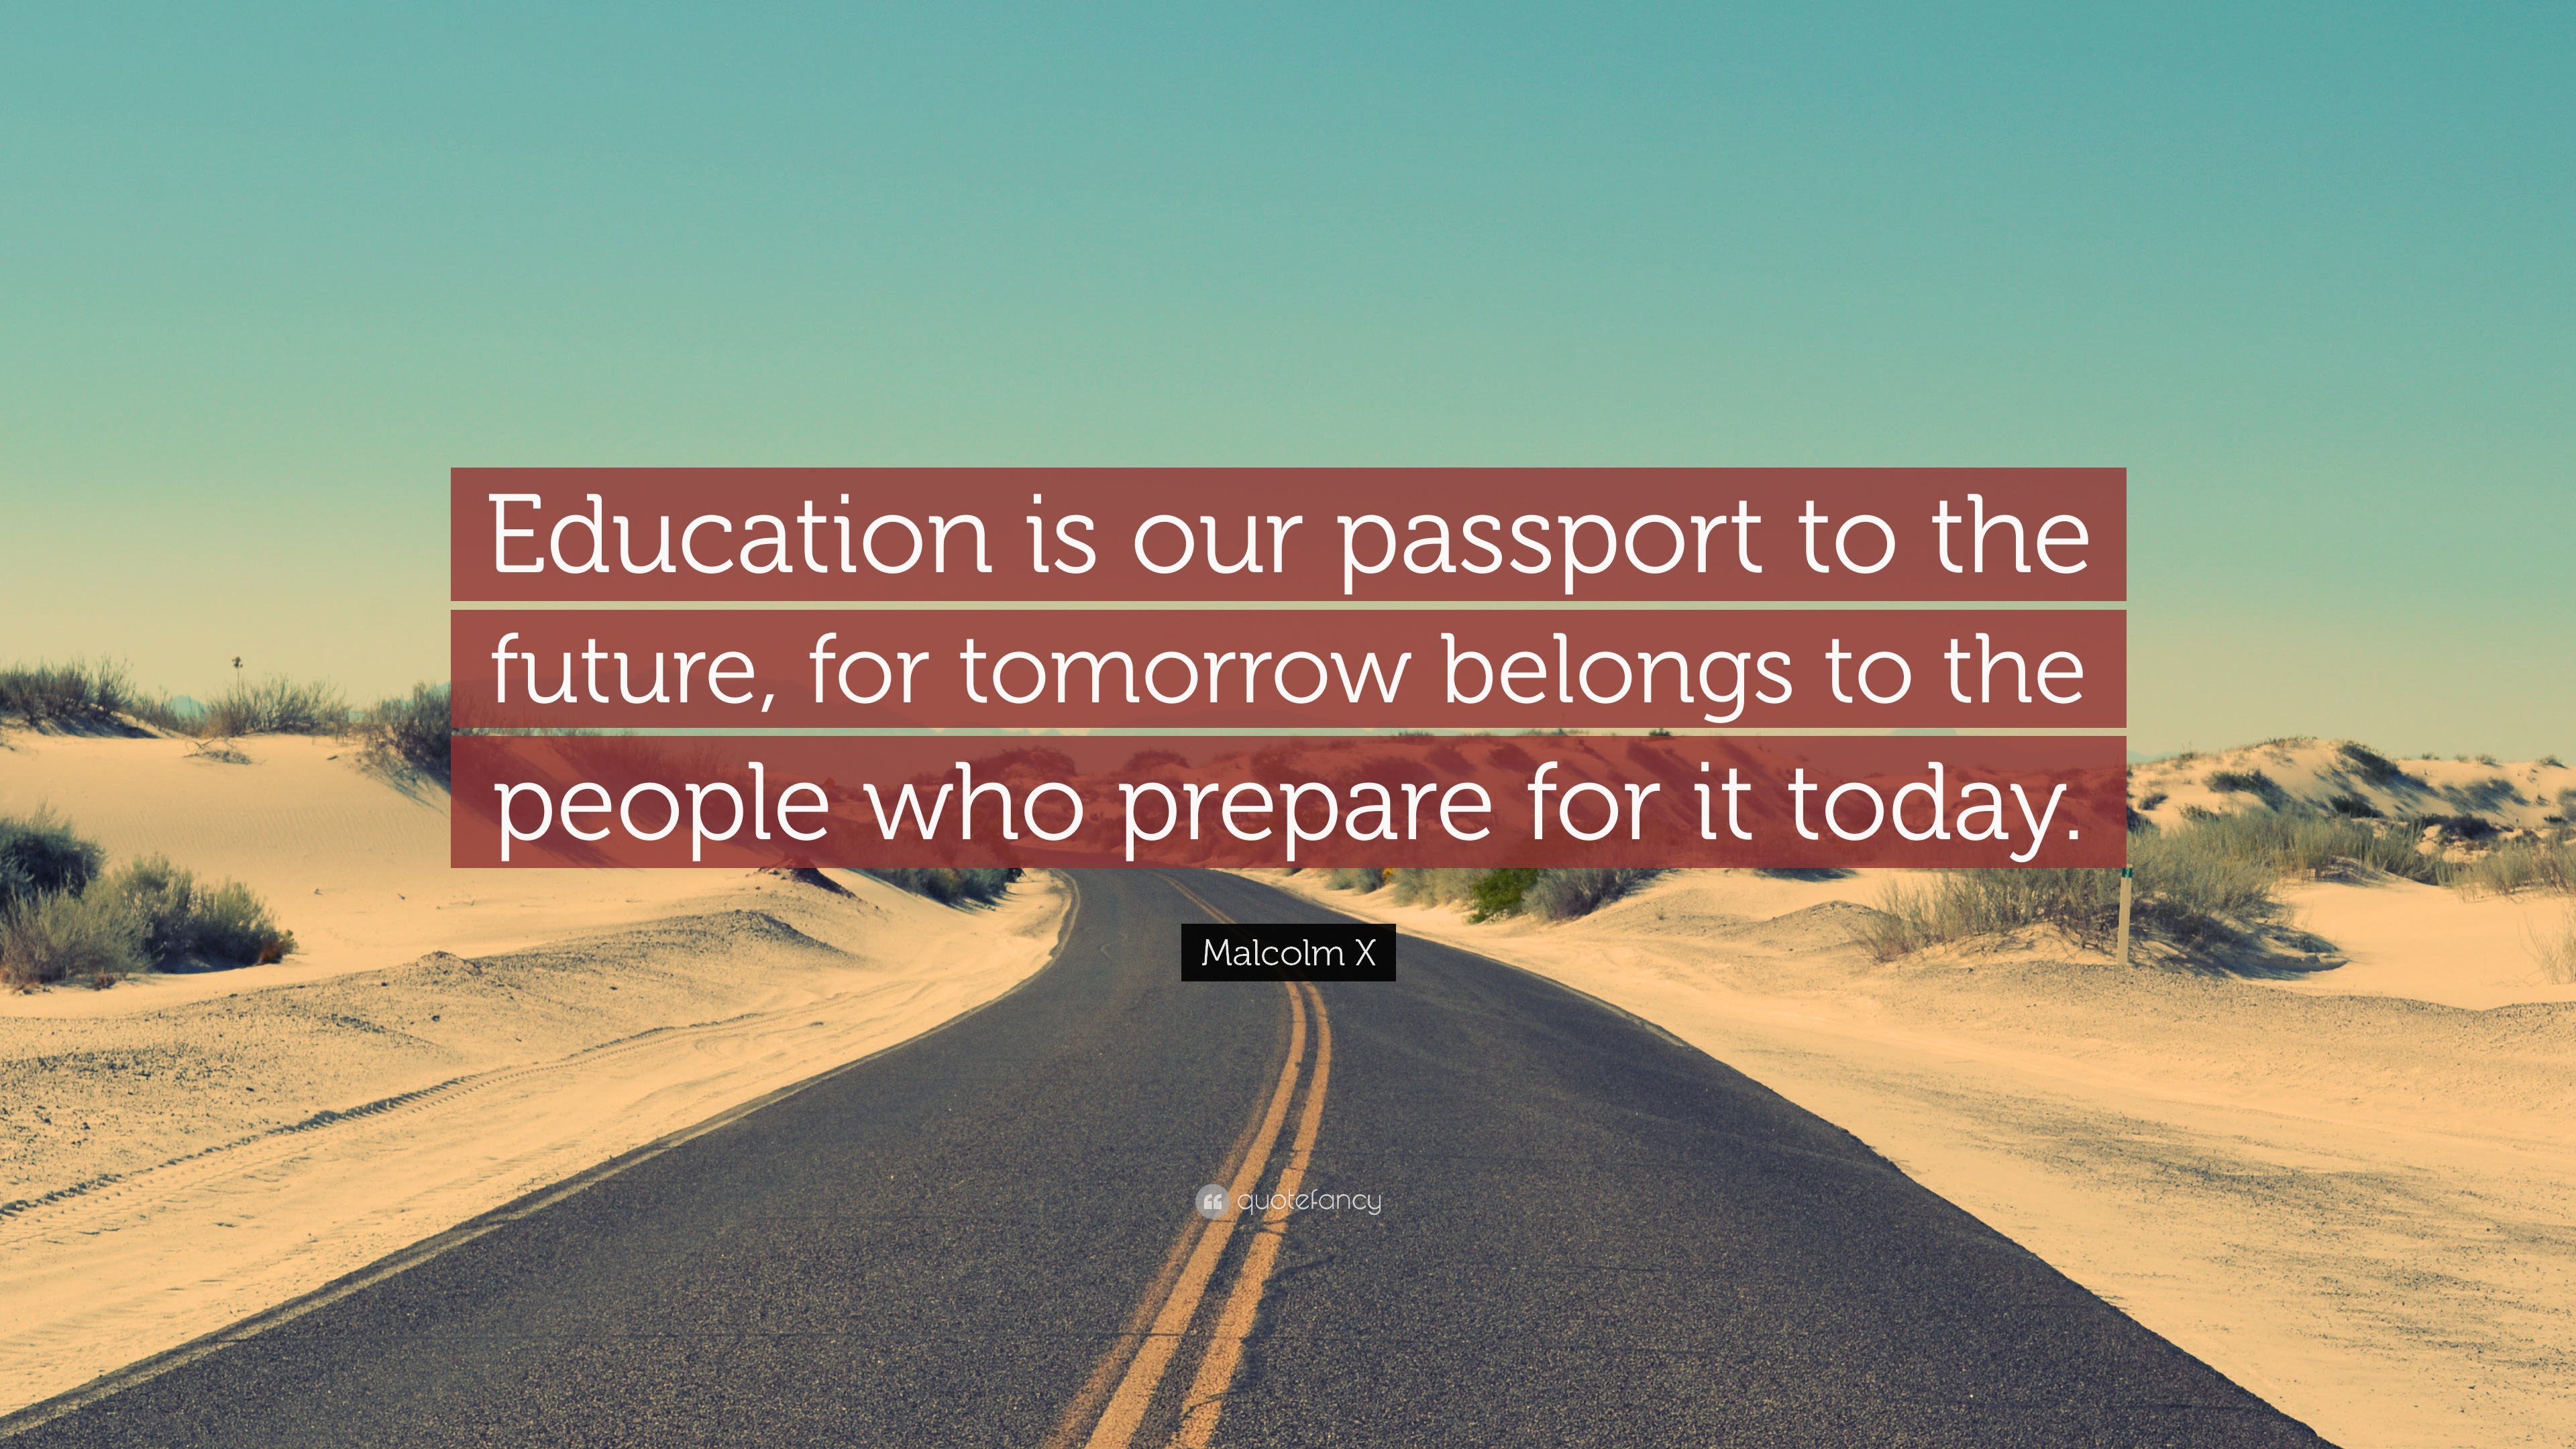 Elegant Malcolm X Quote: U201cEducation Is Our Passport To The Future, For Tomorrow  Belongs